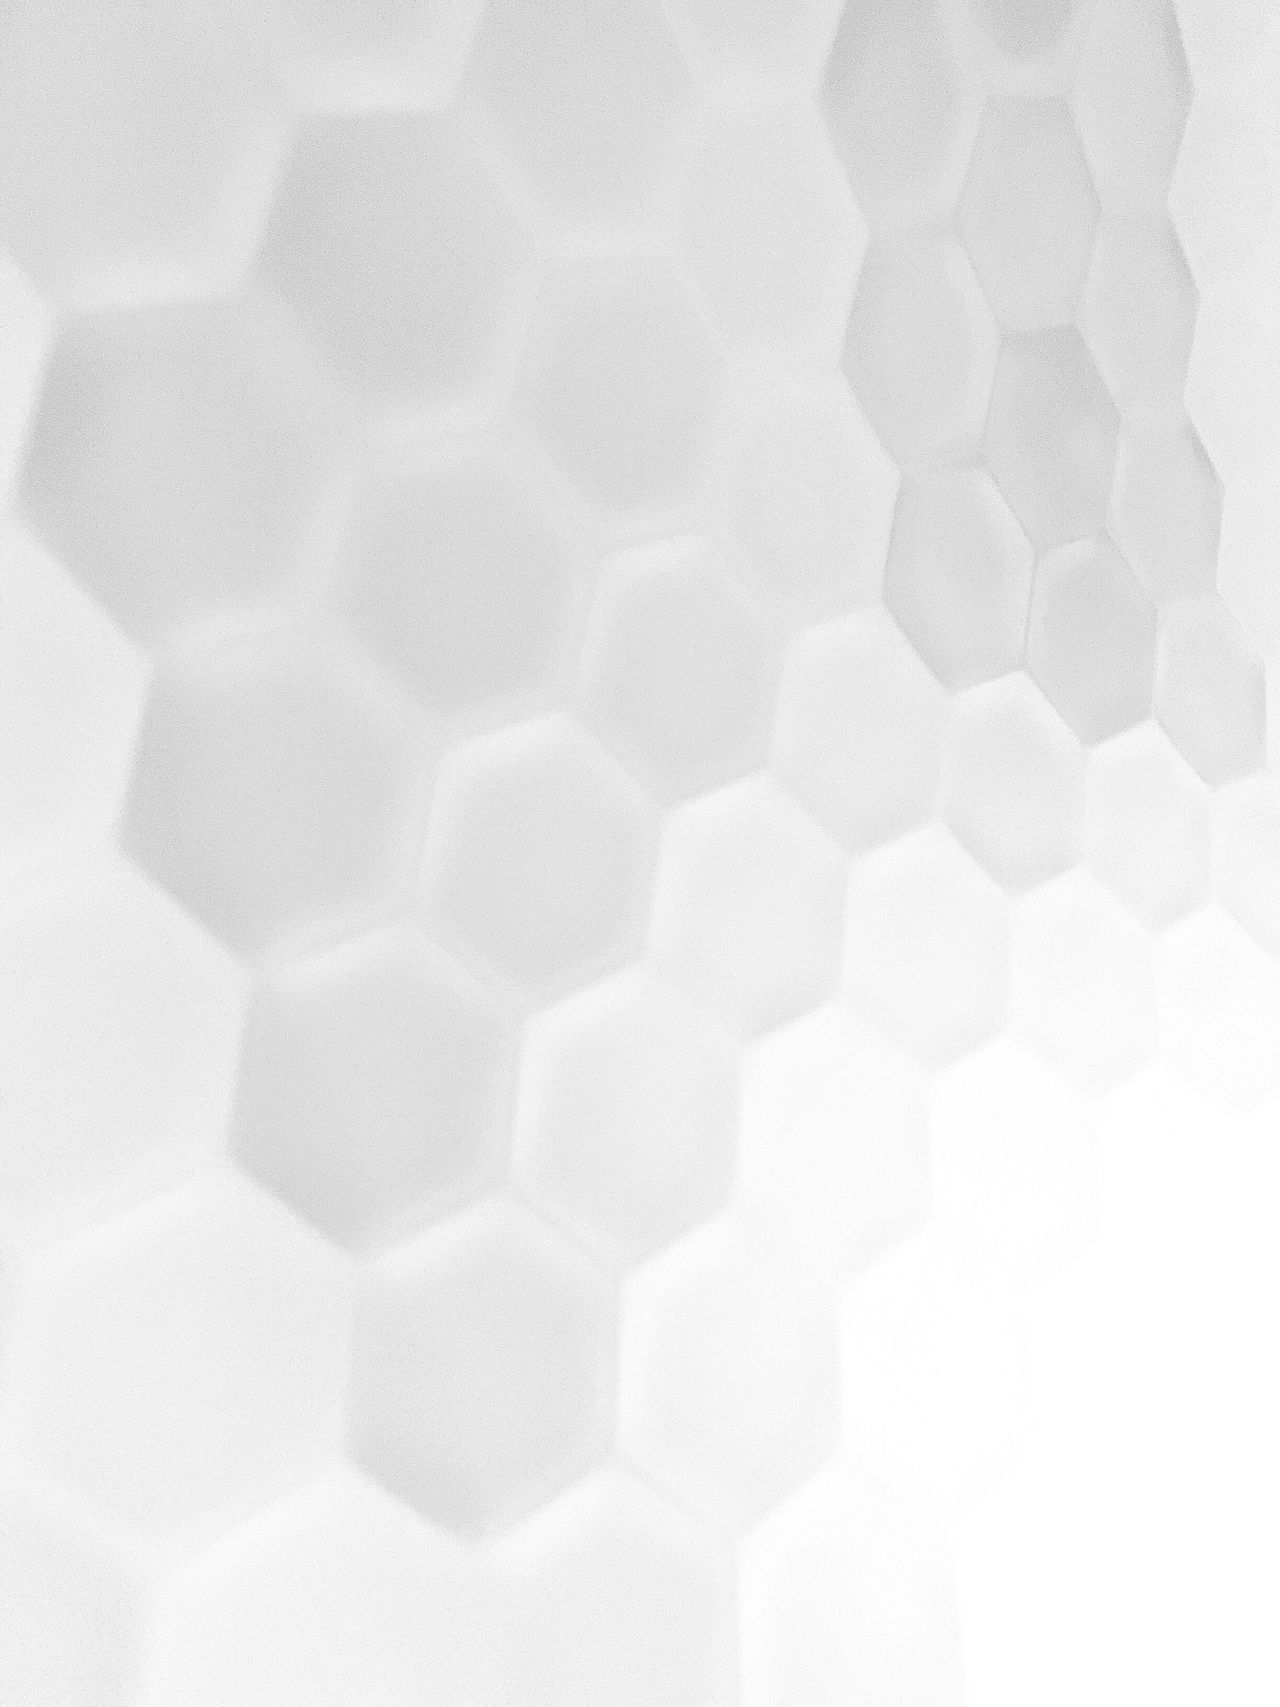 Geometric Shape No People Close-up Pattern Honeycomb Hexagon Shiny Day Structure Structures & Lines Pattern, Texture, Shape And Form Patterns Abstract Geometry Geometric Shapes Geometric White Light And Shadow Light Shapes And Forms Shape Shapes , Lines , Forms & Composition Shapes And Lines Shapes And Patterns  Technology